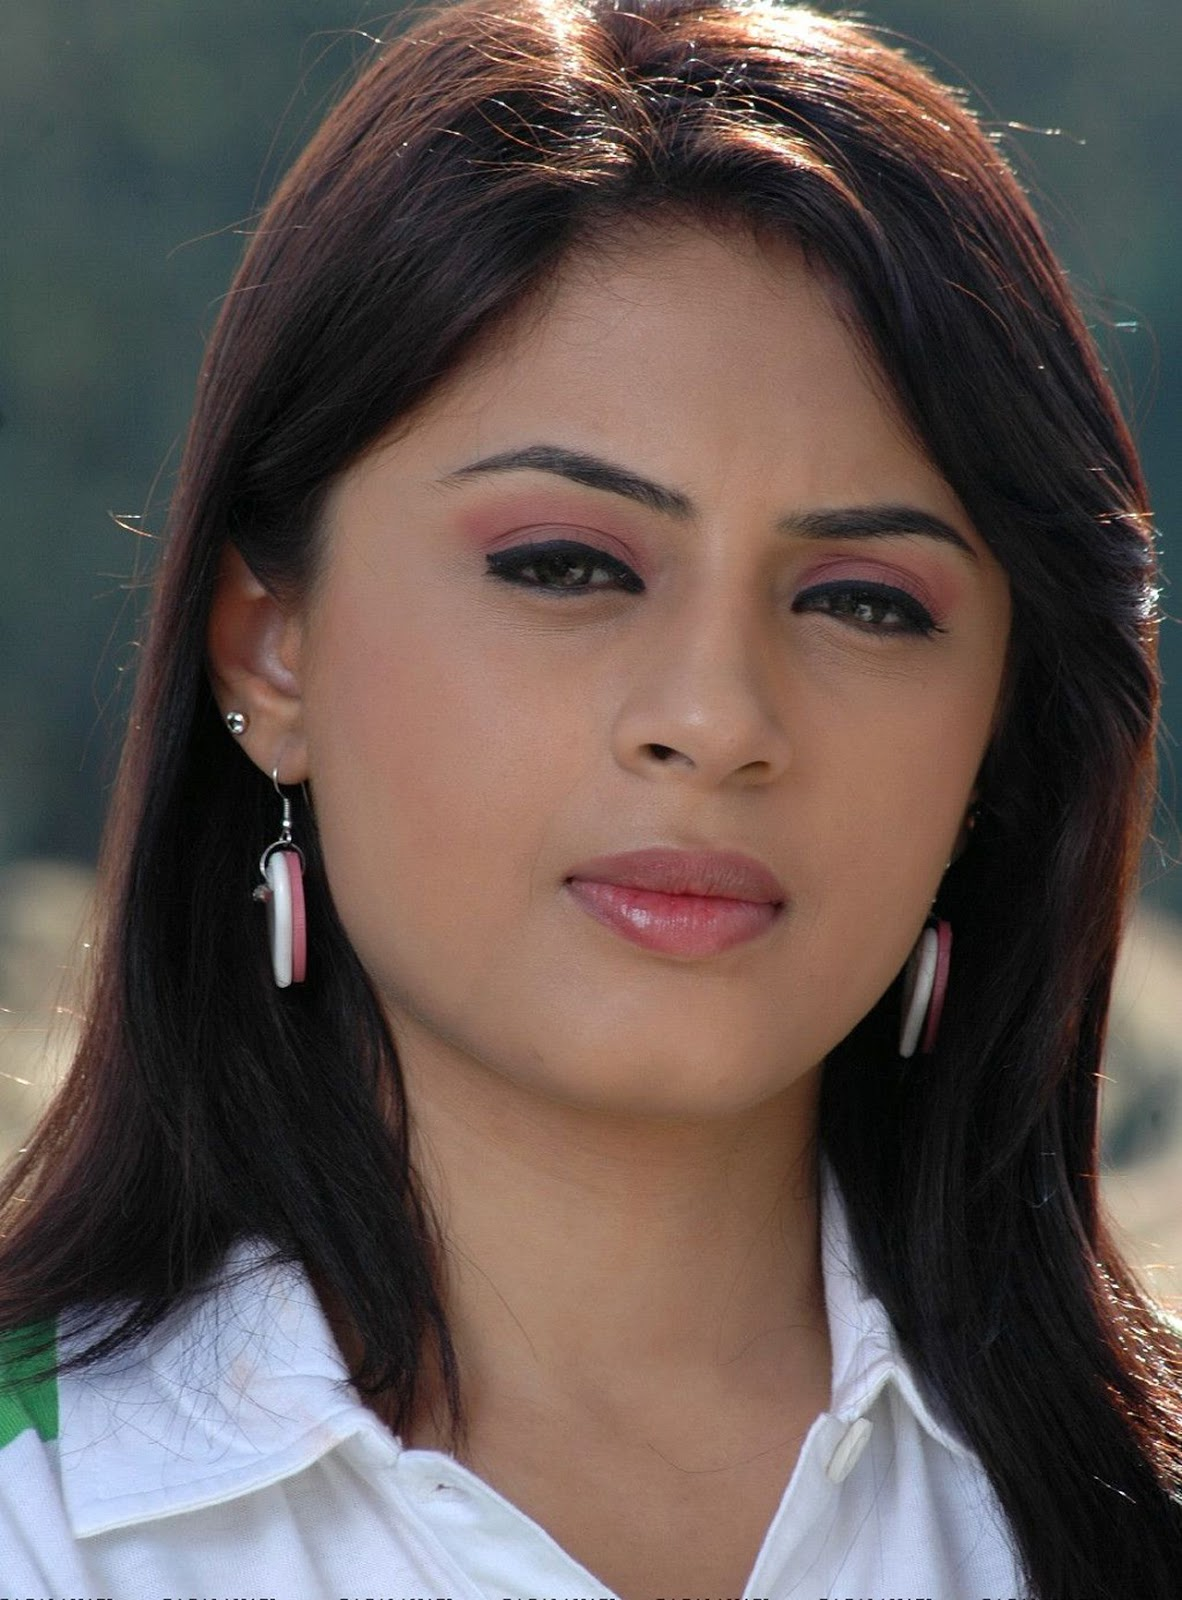 Indian Actress Hd Wallpapers, Images, Pics, Gallery South -1948